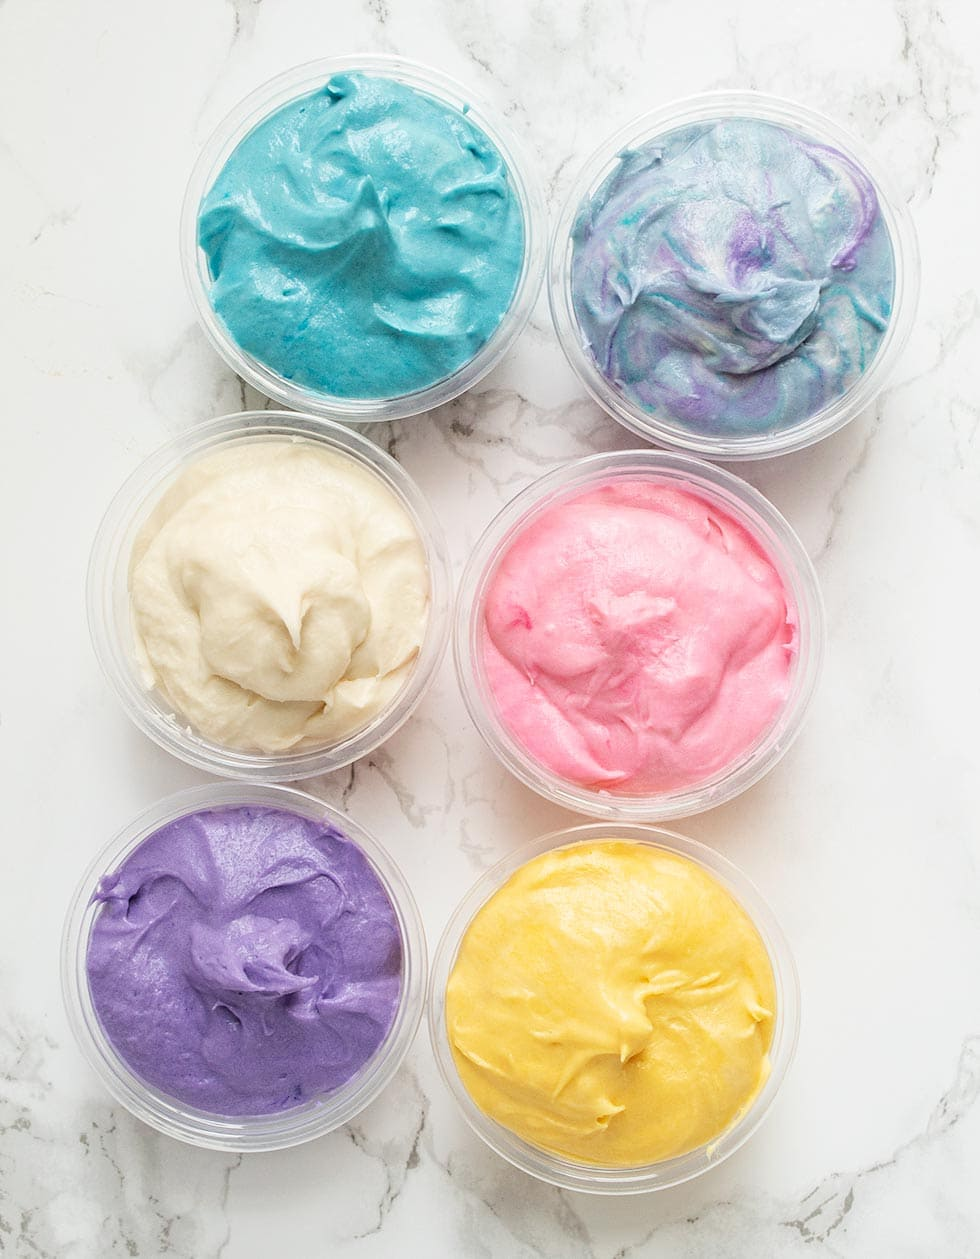 overhead view of keto frosting shots in various colors